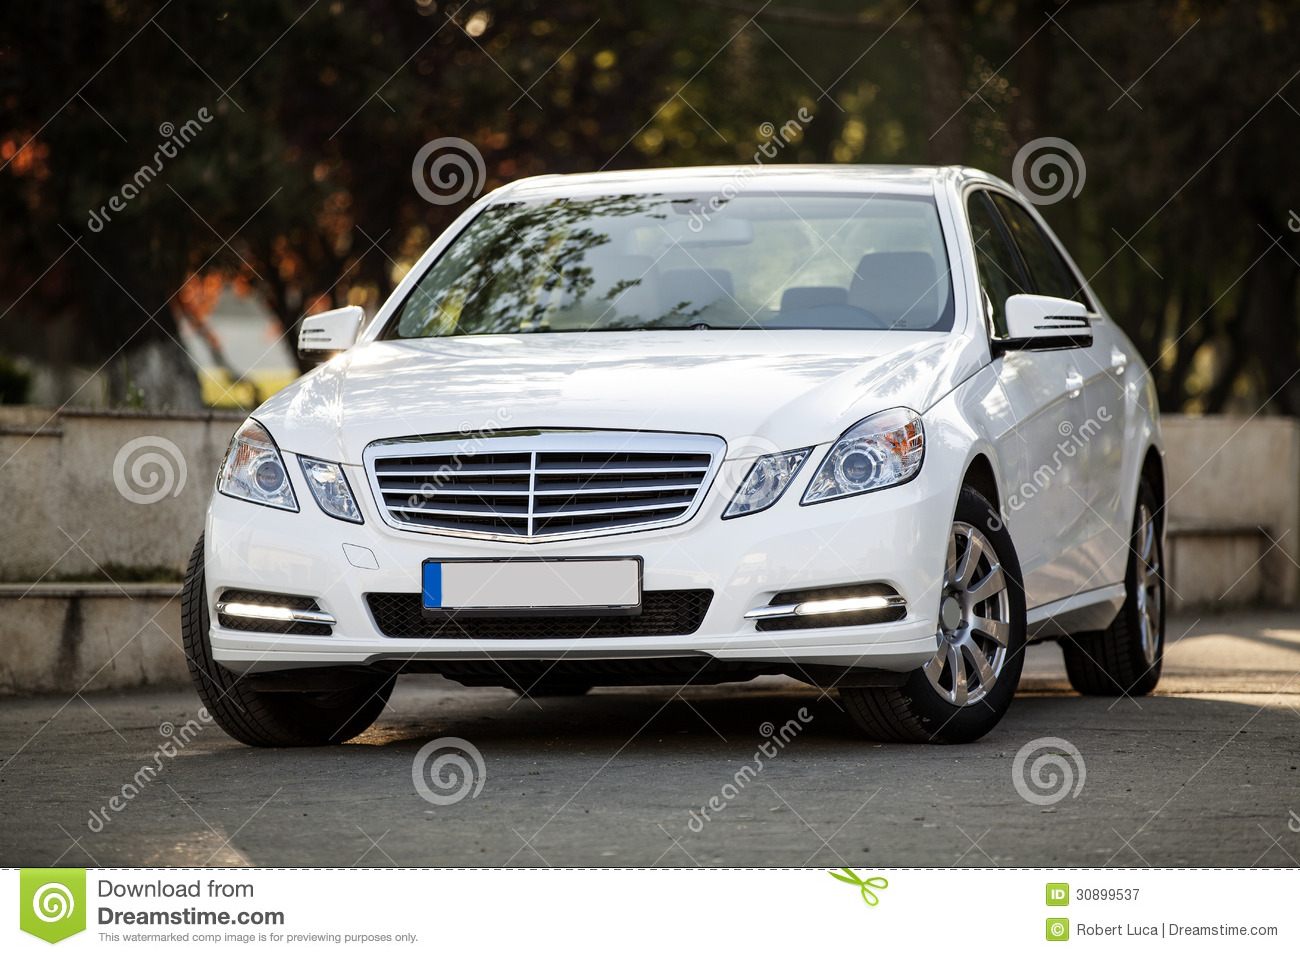 Mercedes benz e class model royalty free stock photography for Mercedes benz brand image